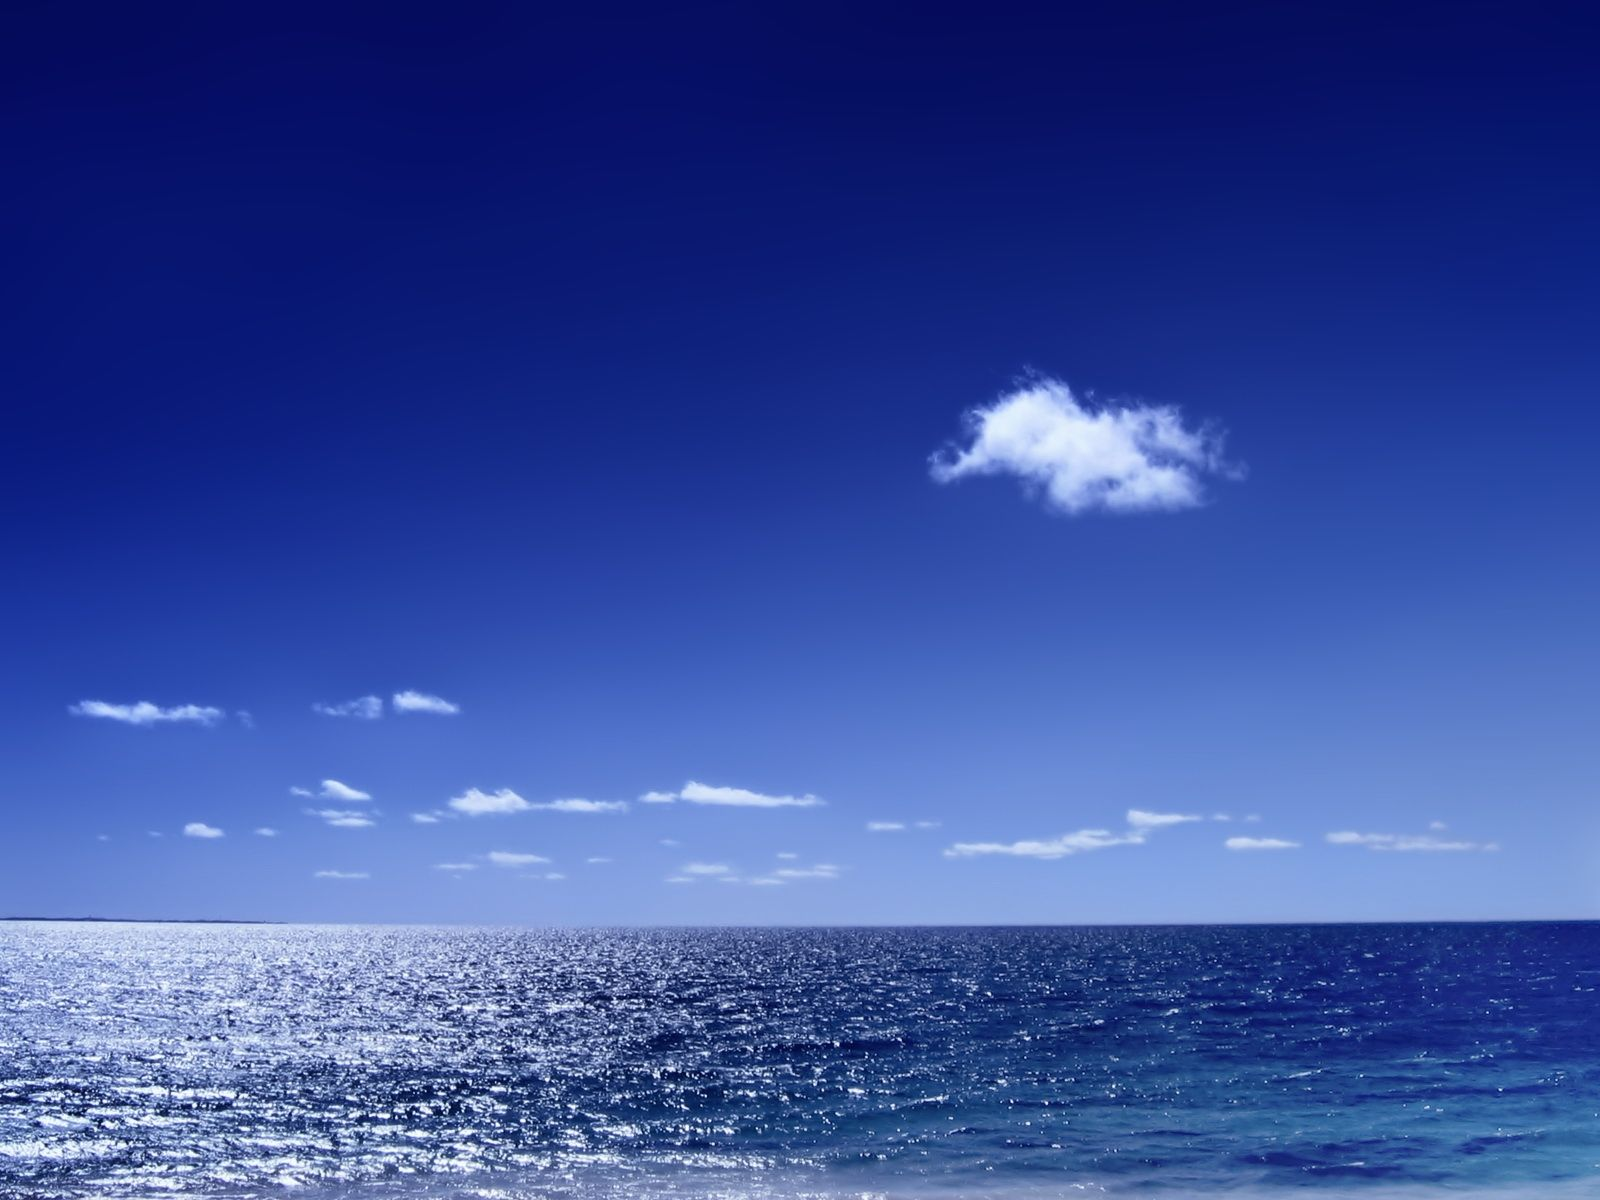 wallpapers and screensavers HD blue sky Wallpaper